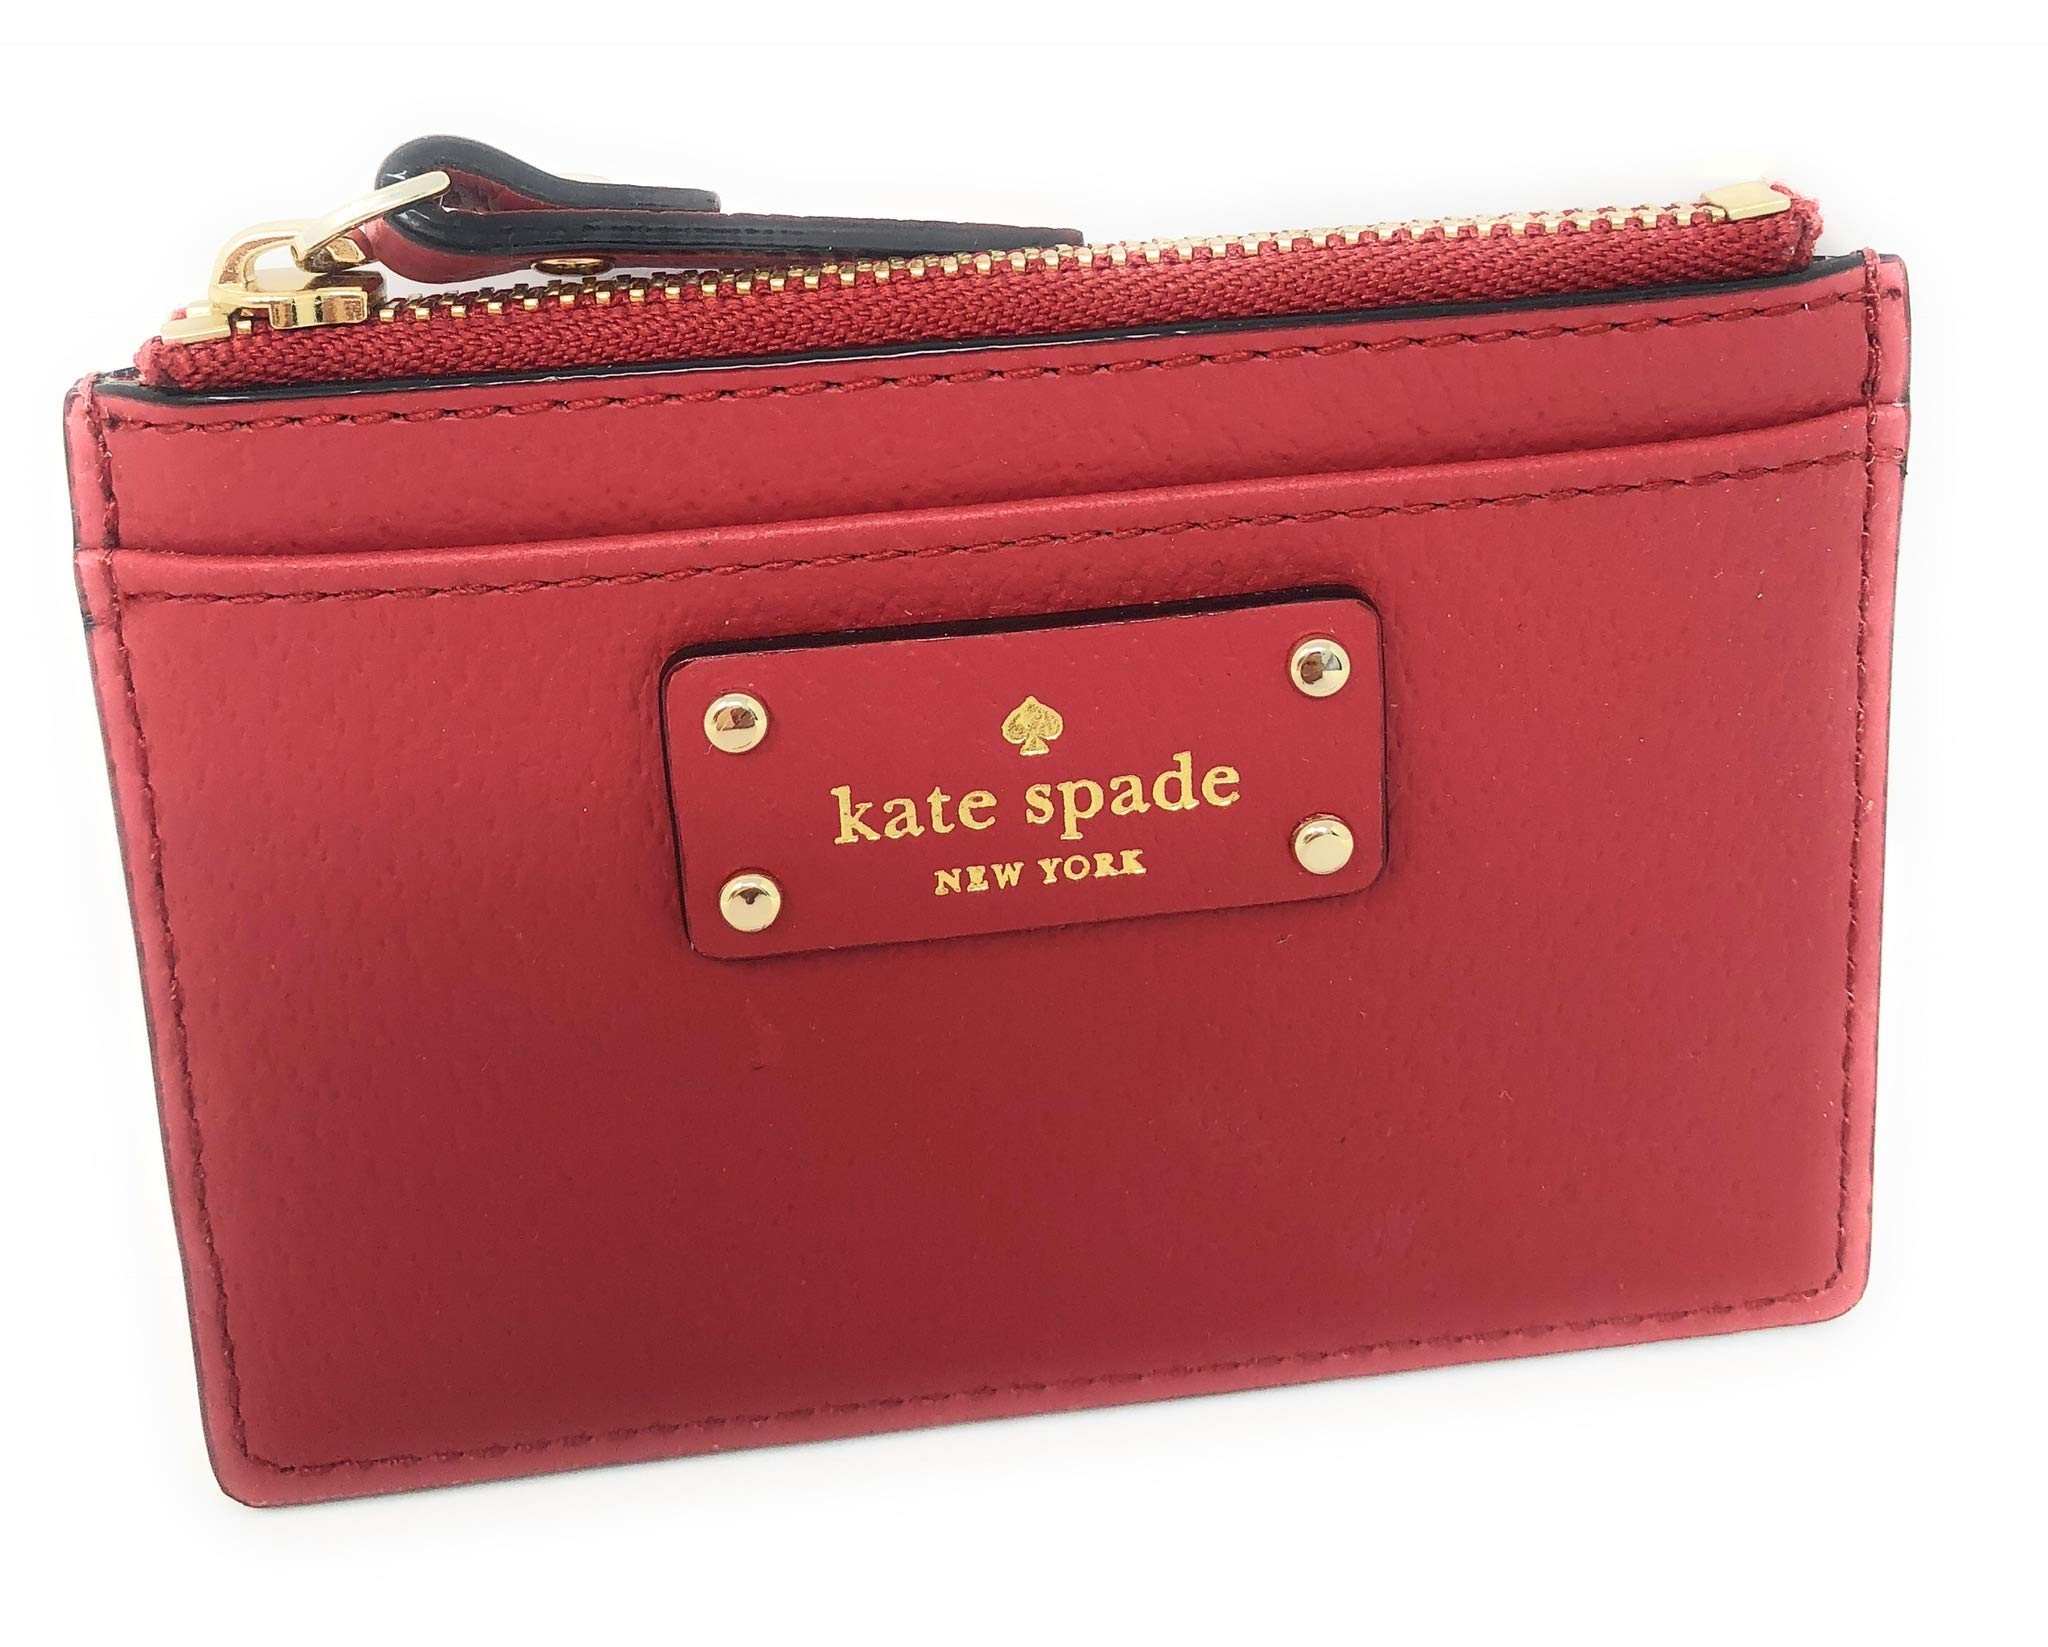 Kate Spade Wallet Coin Purse Business Credit Card Holder Case Redcarpet by Kate Spade New York